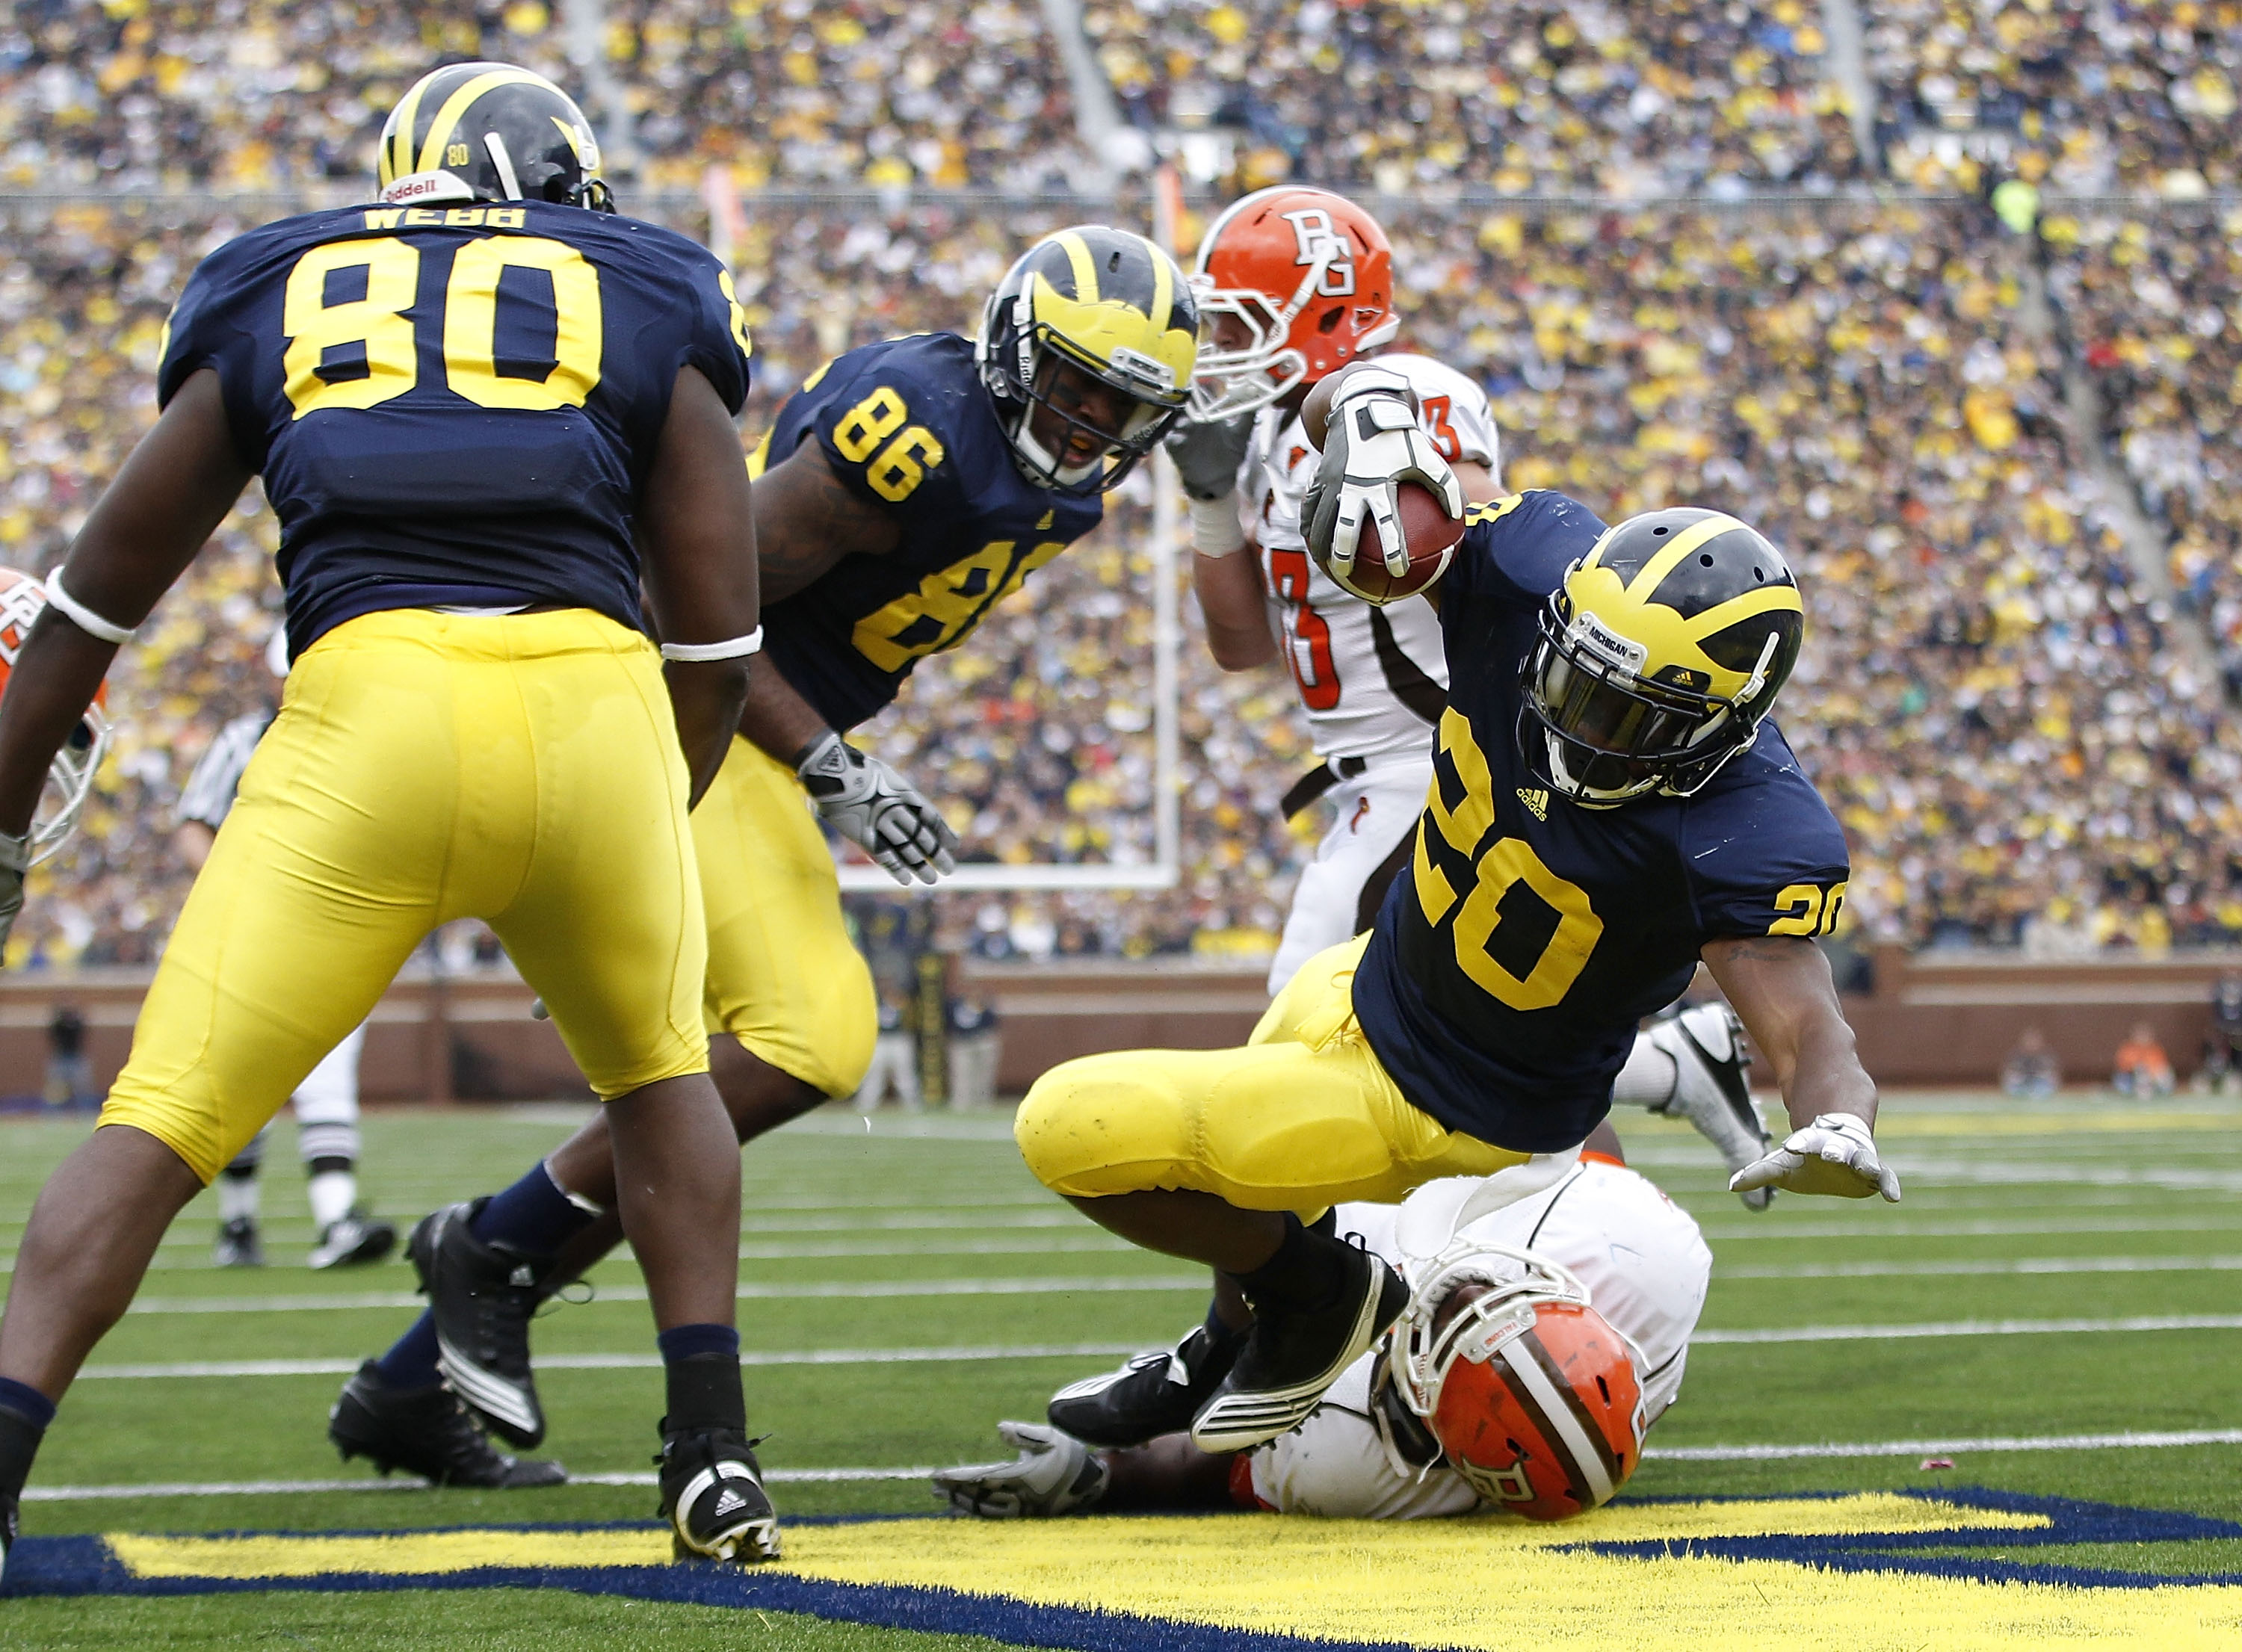 ANN ARBOR, MI - SEPTEMBER 25:  Michael Shaw #20 of the Michigan Wolverines runs for a second quarter touchdown during the game against Bowling Green on September 25, 2010 at Michigan Stadium in Ann Arbor, Michigan.  (Photo by Leon Halip/Getty Images)